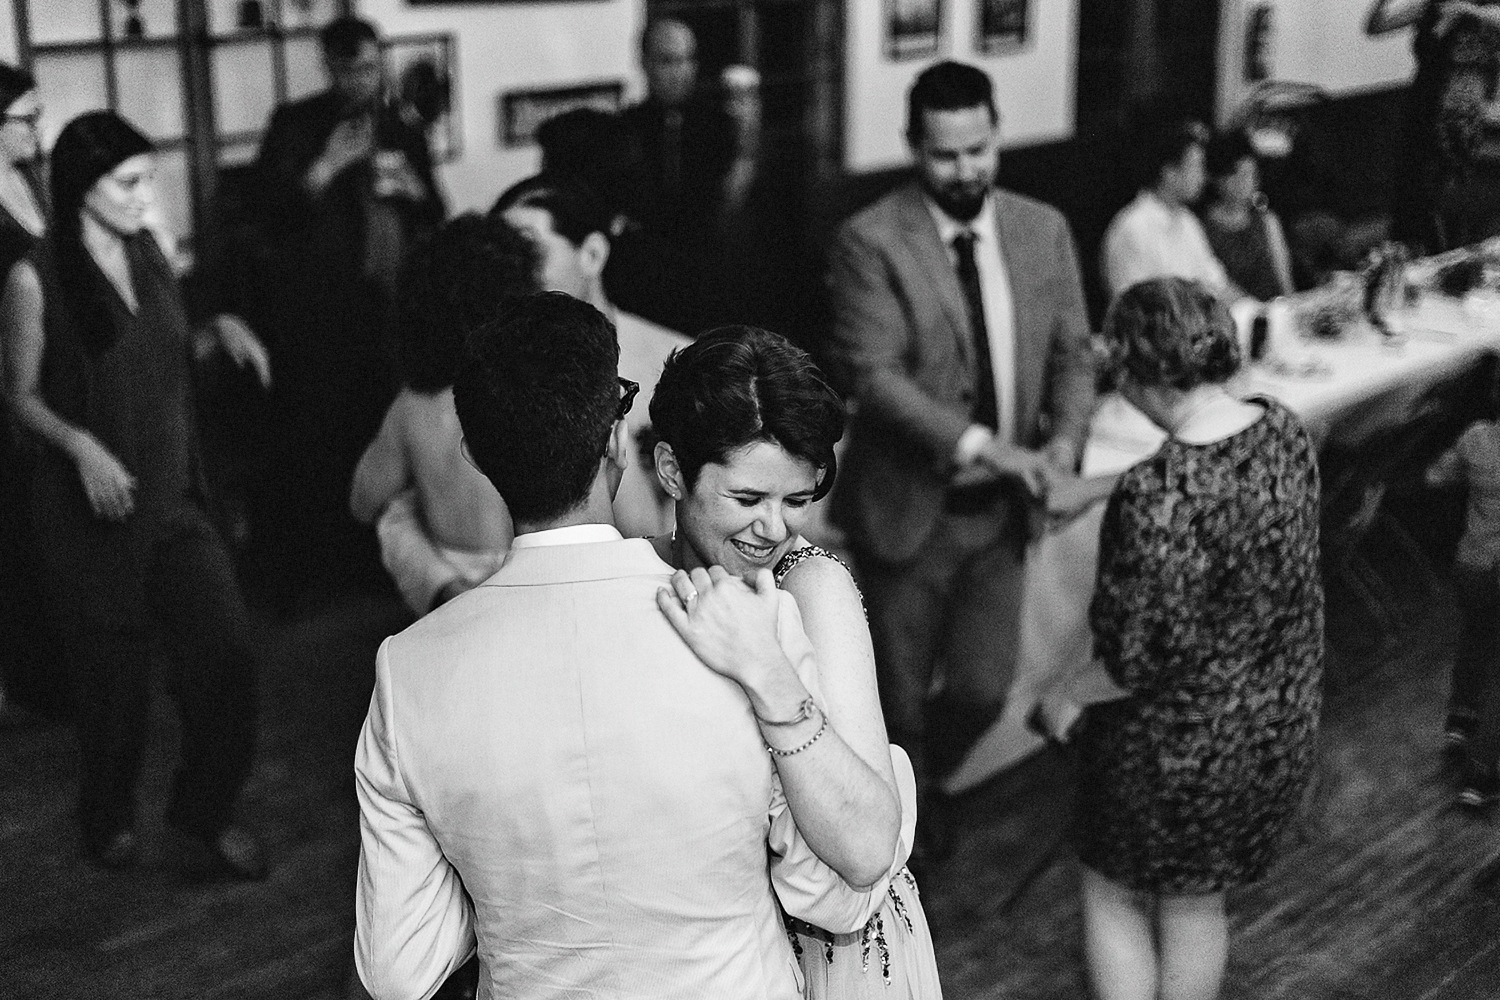 Best-Wedding-Photographers-Toronto-with-documentary-style-photojournalistic-wedding-photographer-editorial-cool-hip-timeless-Intimate-Toronto-Island-Cafe-Clubhouse-Wedding--Bride-Dancing-Hard-Analog-Film-Couple-Dancing.jpg